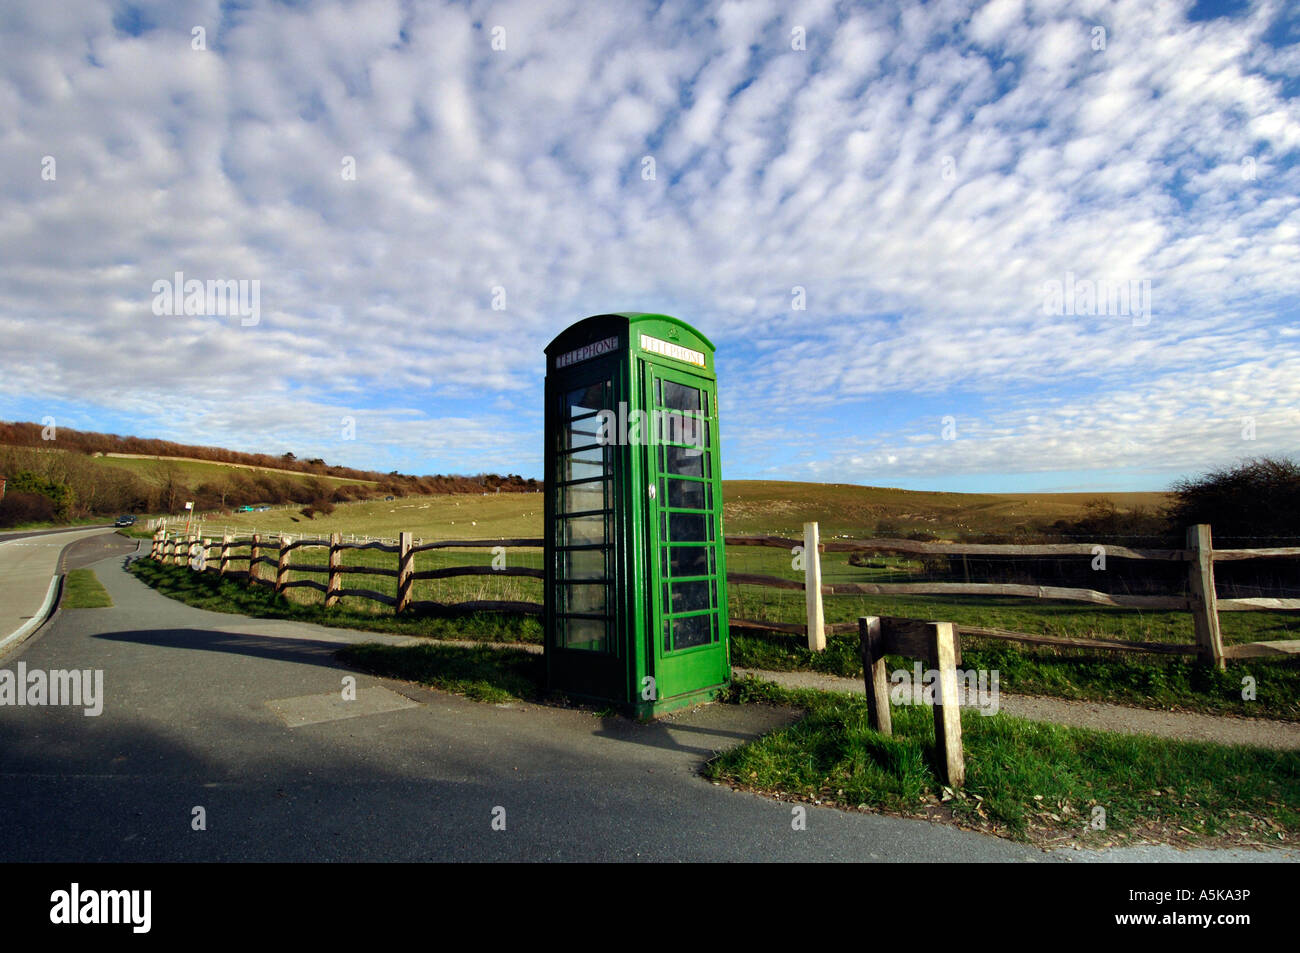 A British Telecom green K6 telephone box on a quiet county lane in Sussex - Stock Image